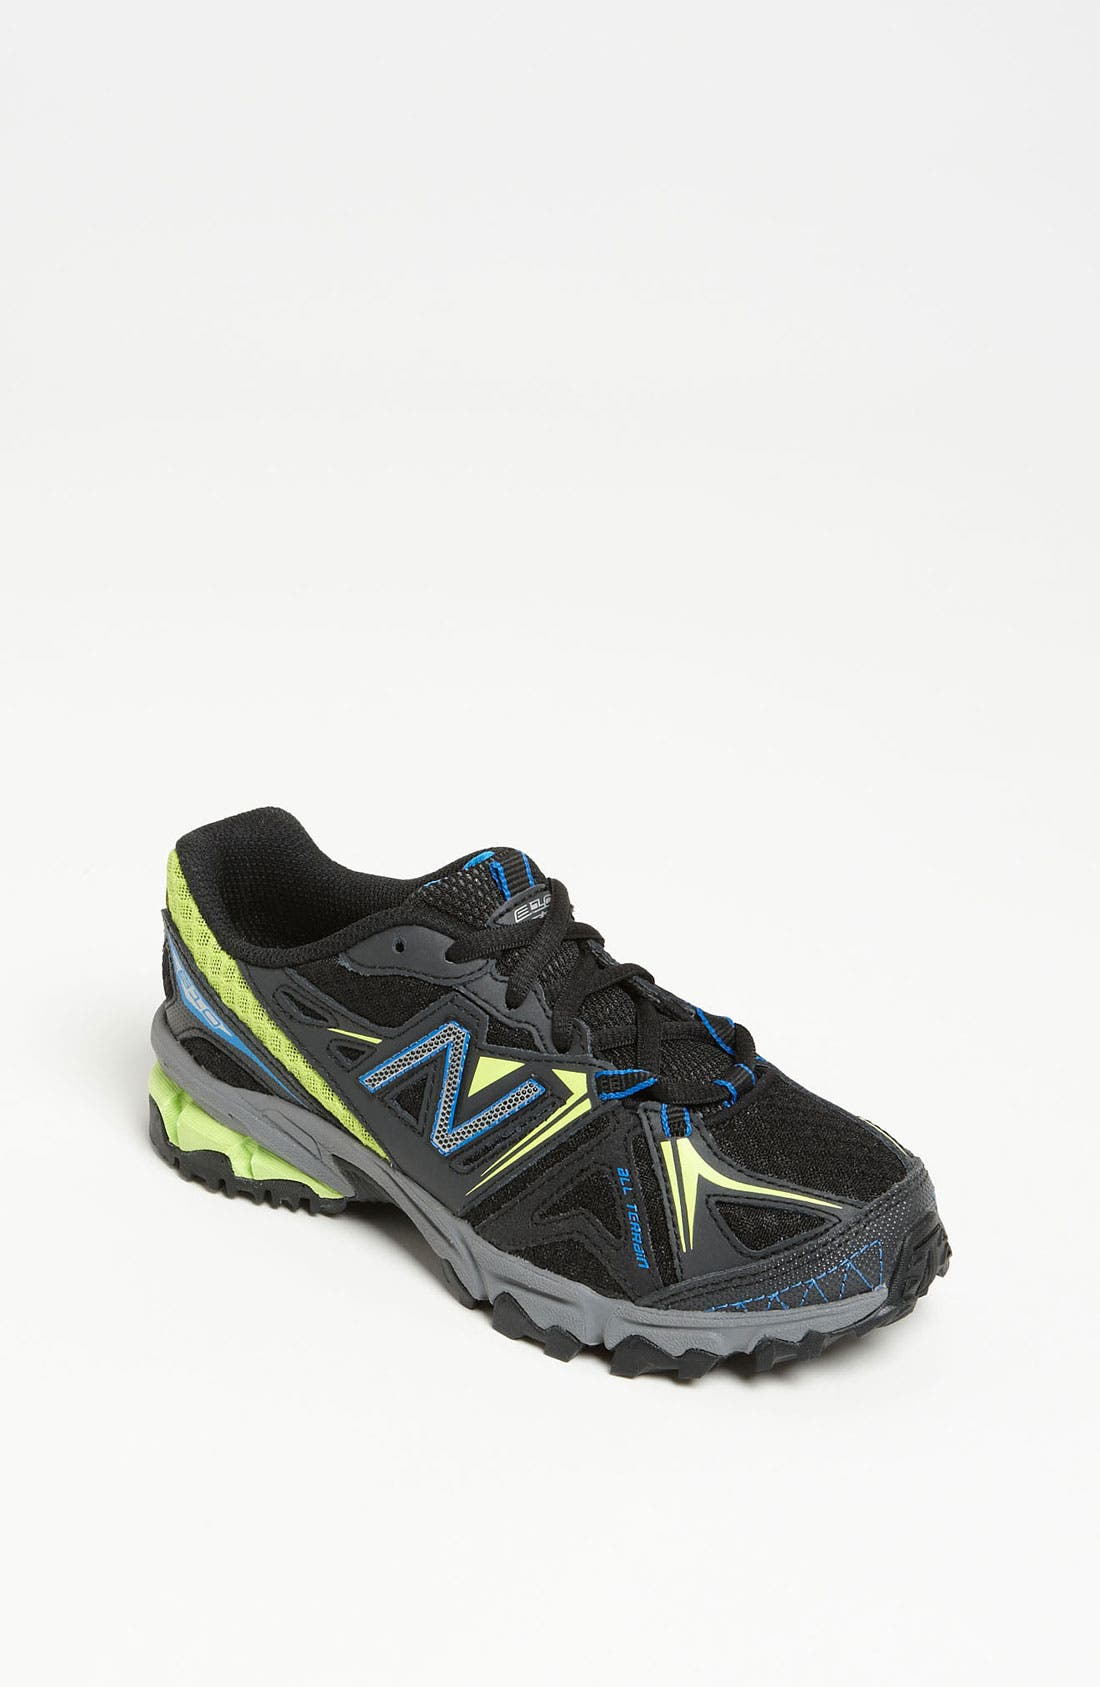 Main Image - New Balance 'Takedown 610' Trail Running Shoe (Toddler, Little Kid & Big Kid)